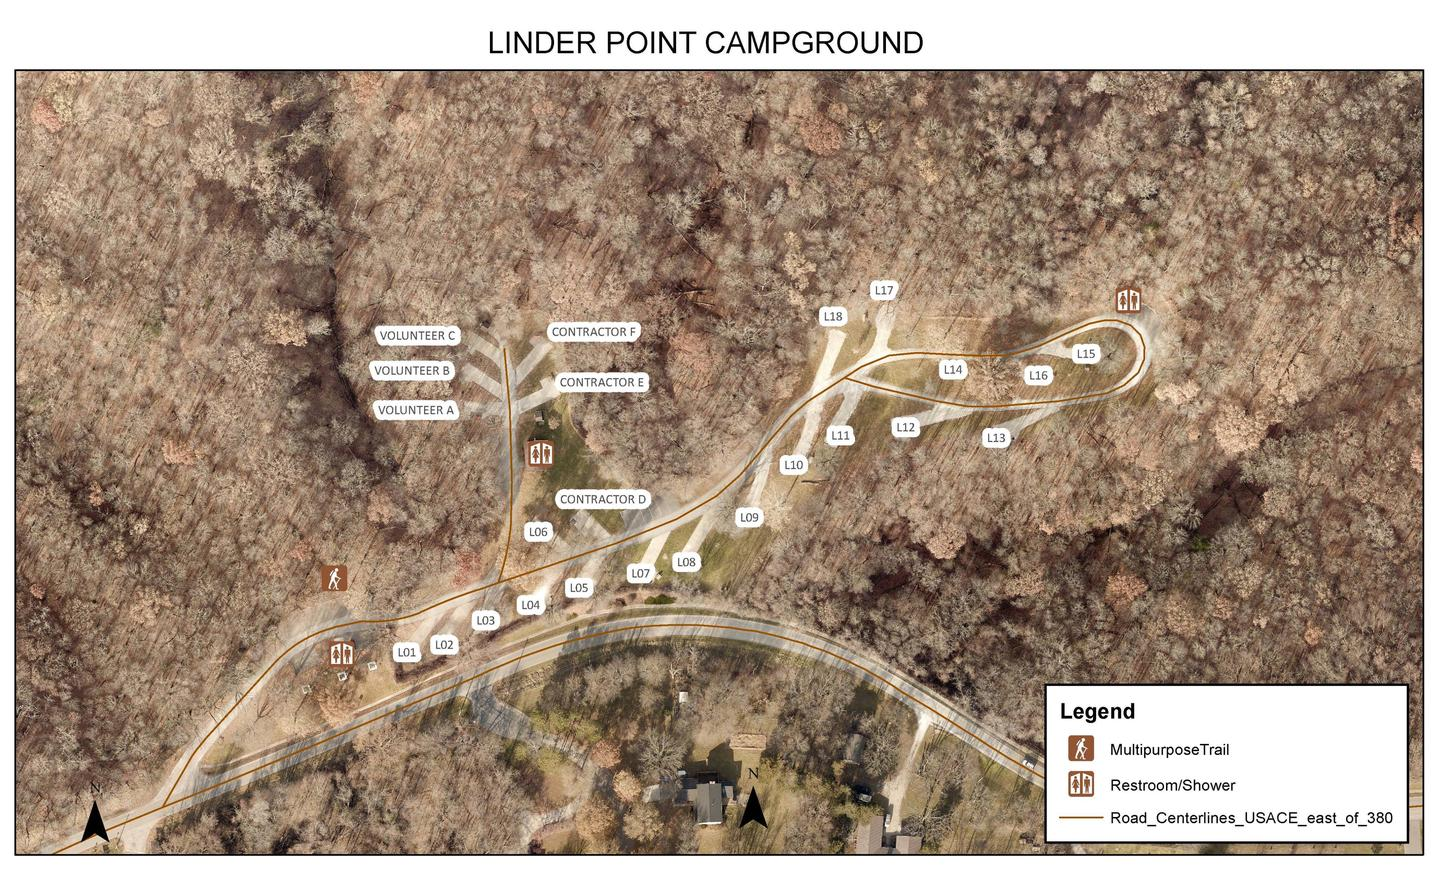 Linder PointCampground